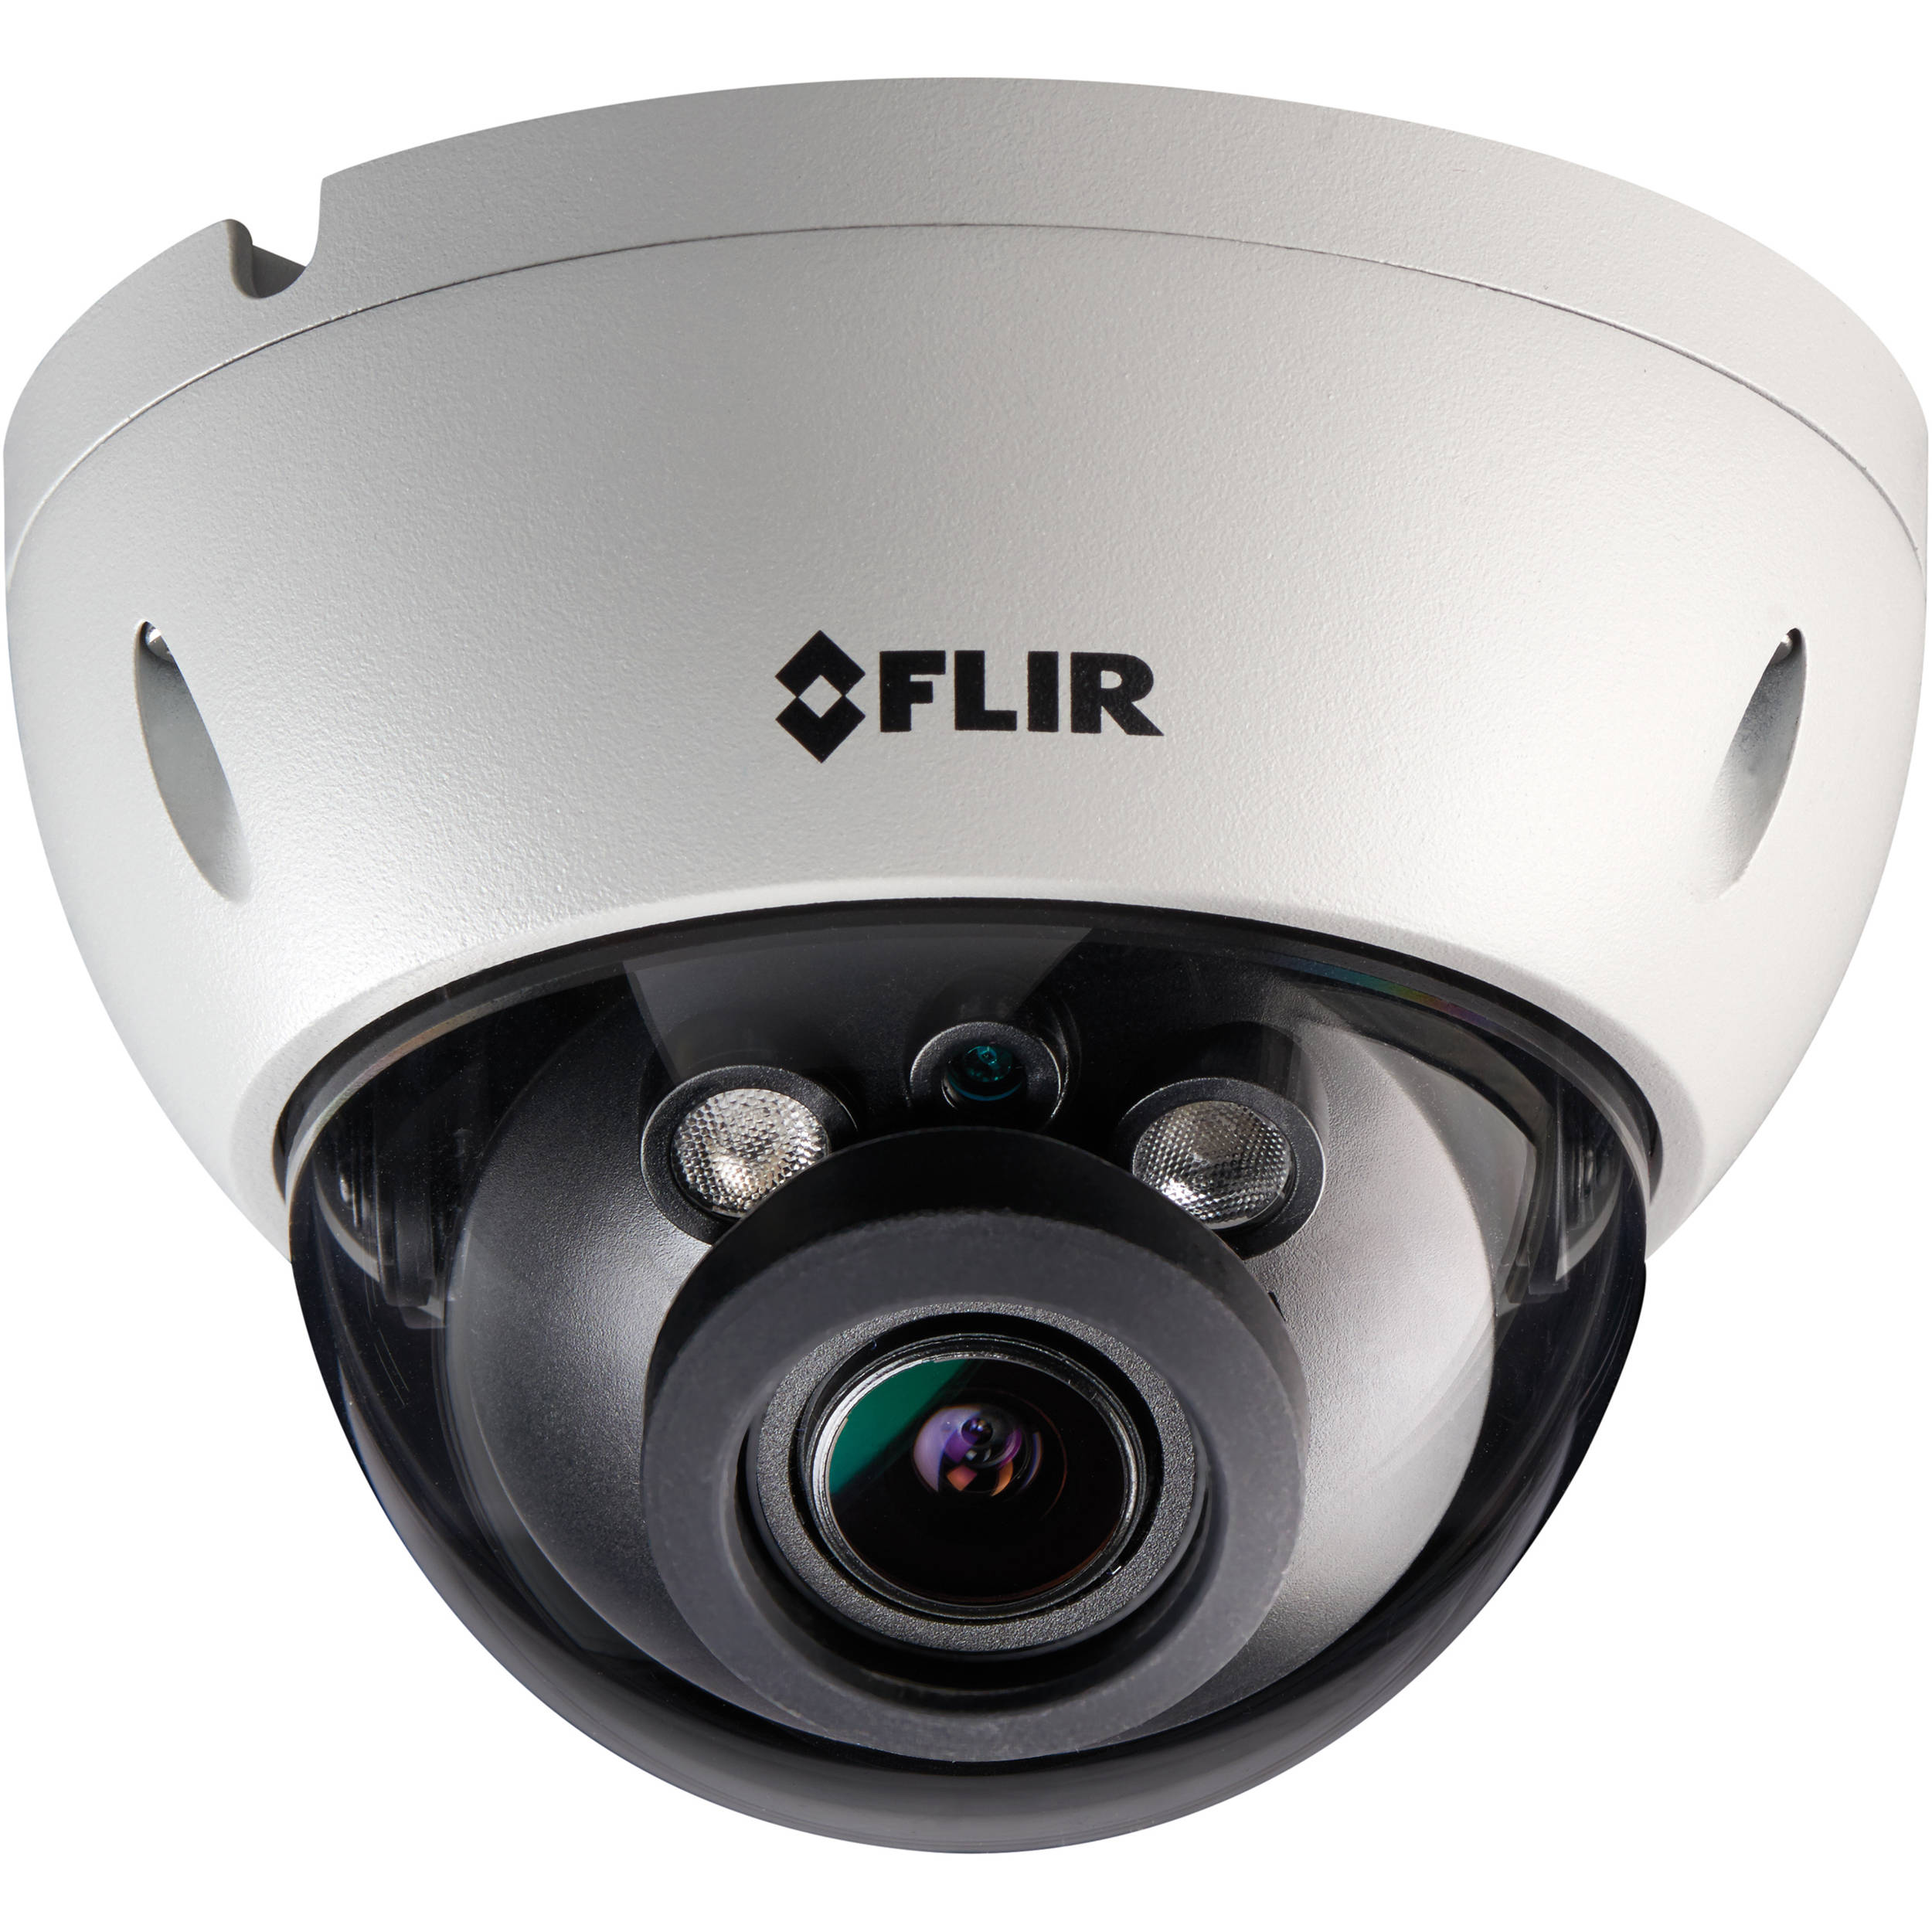 flir 3mp outdoor dome camera n237ve b h photo video. Black Bedroom Furniture Sets. Home Design Ideas